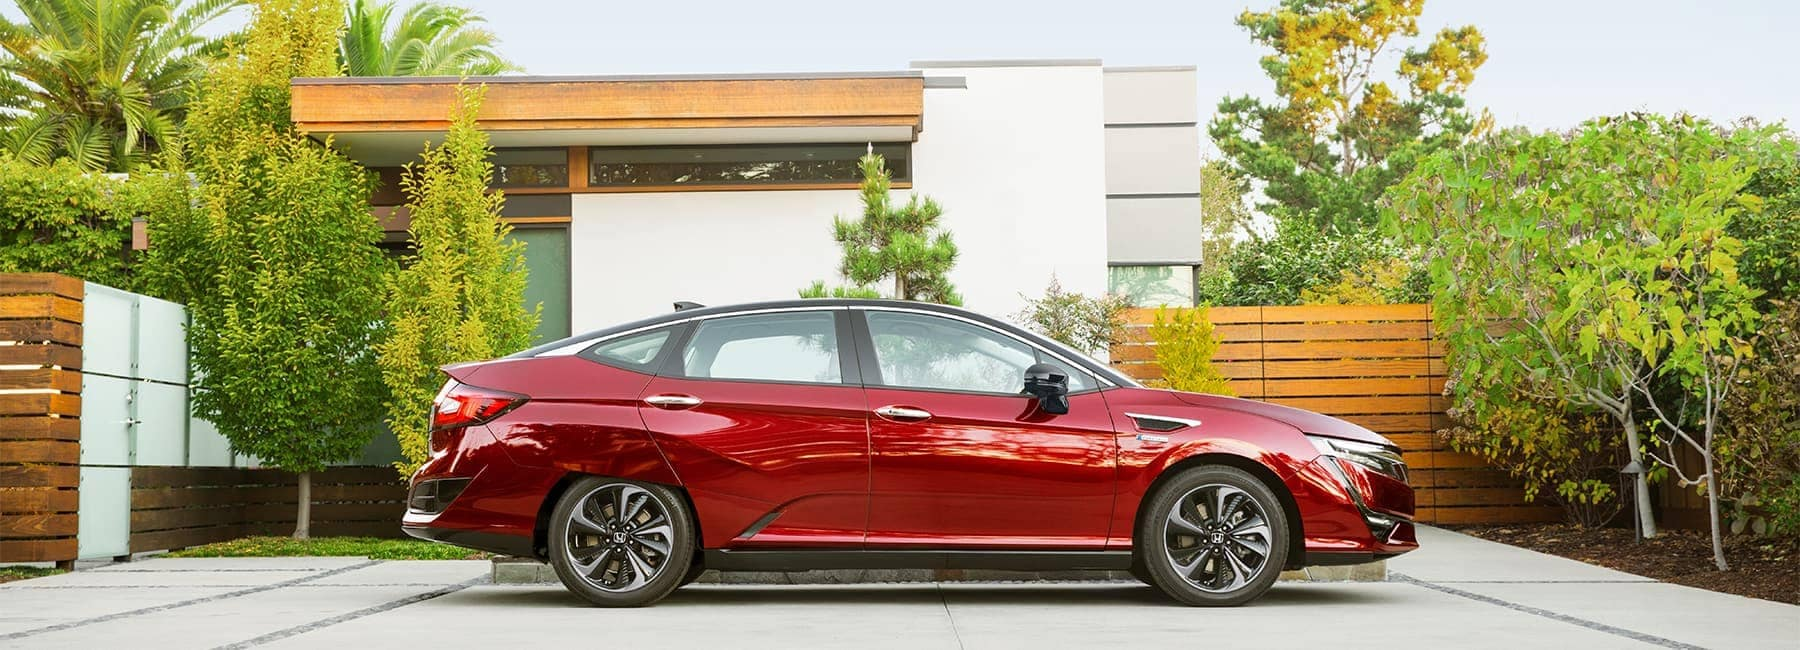 2020-Honda-Clarity-parked-side-view